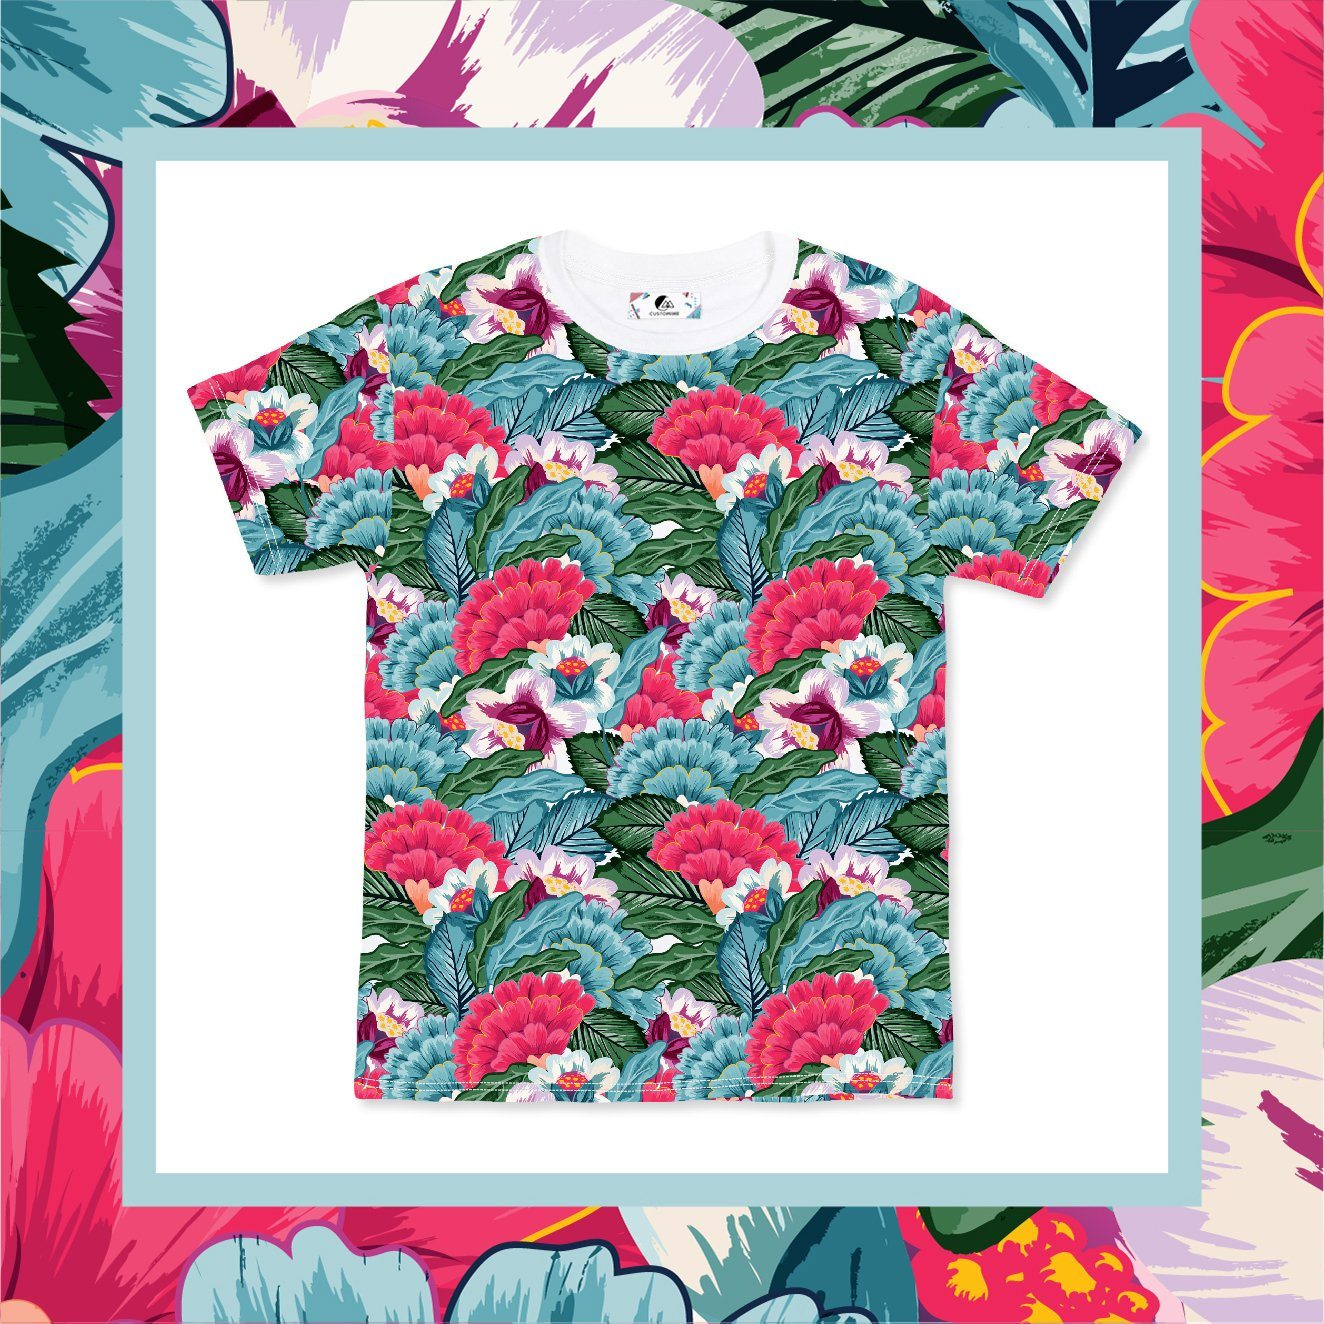 Flower Blossom Men's Tee (Pre-Order) - Local T-shirts - CUSTOMINE - Naiise